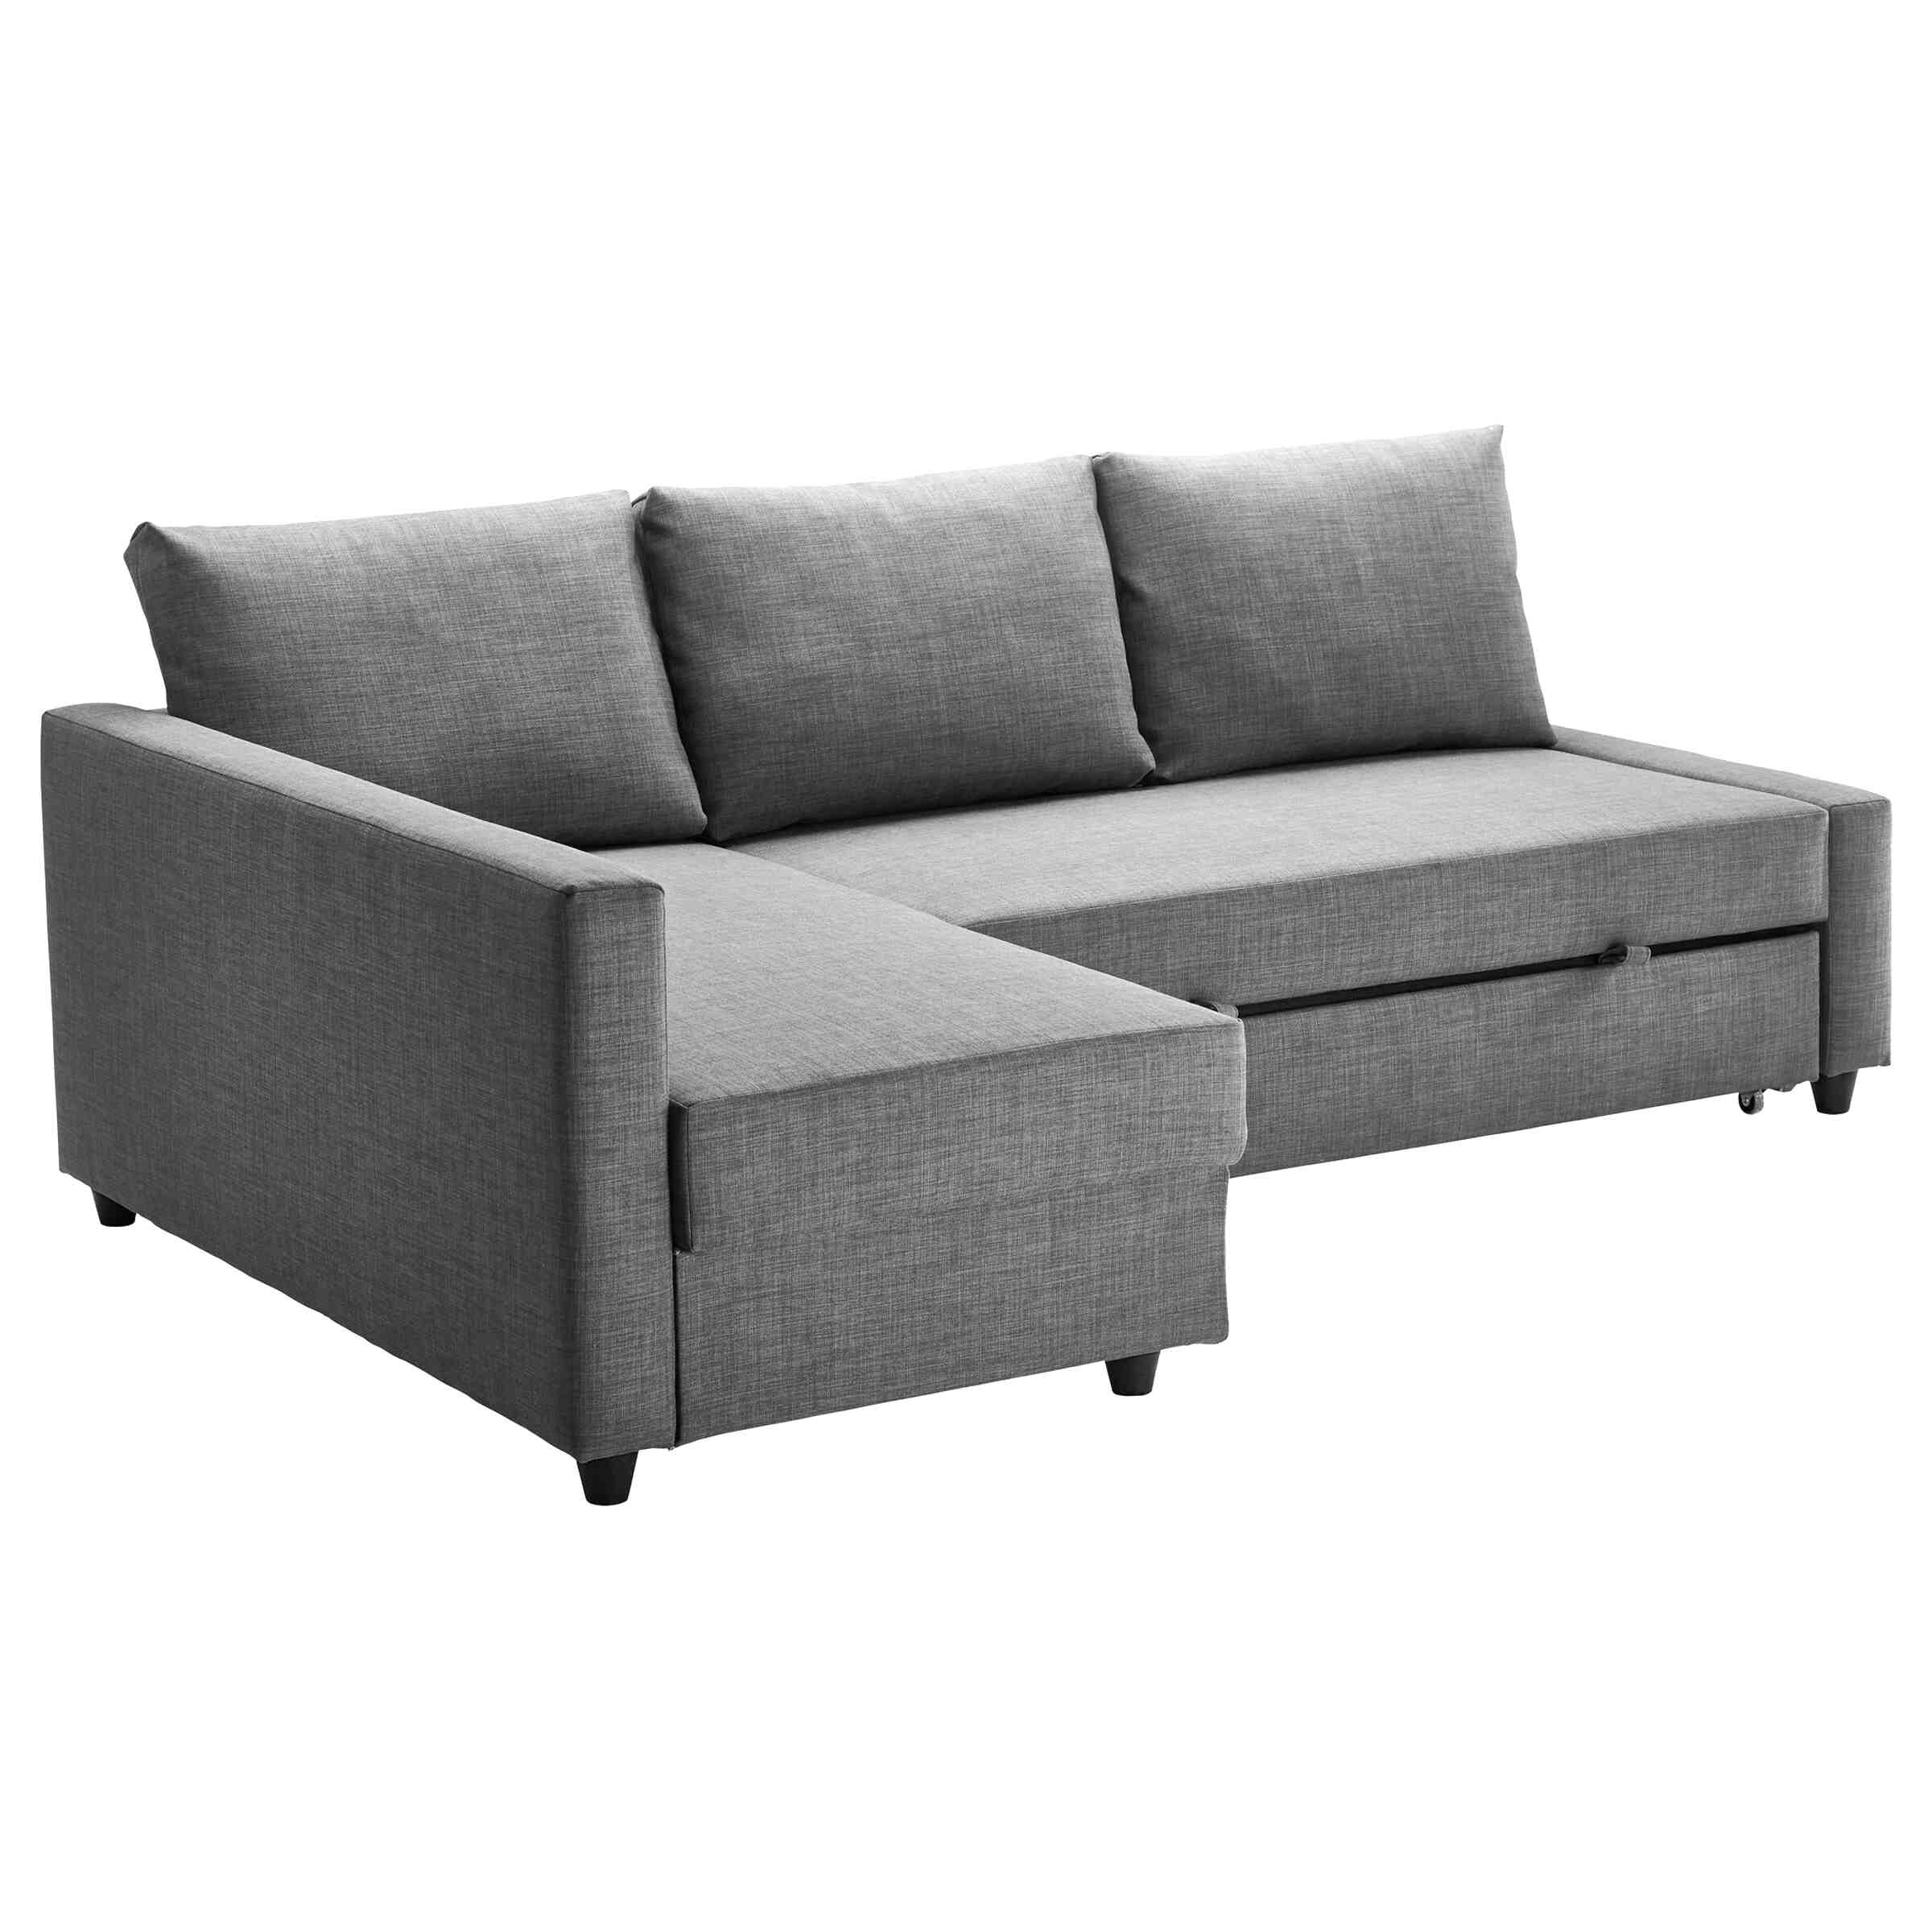 l shaped sofa bed for sale